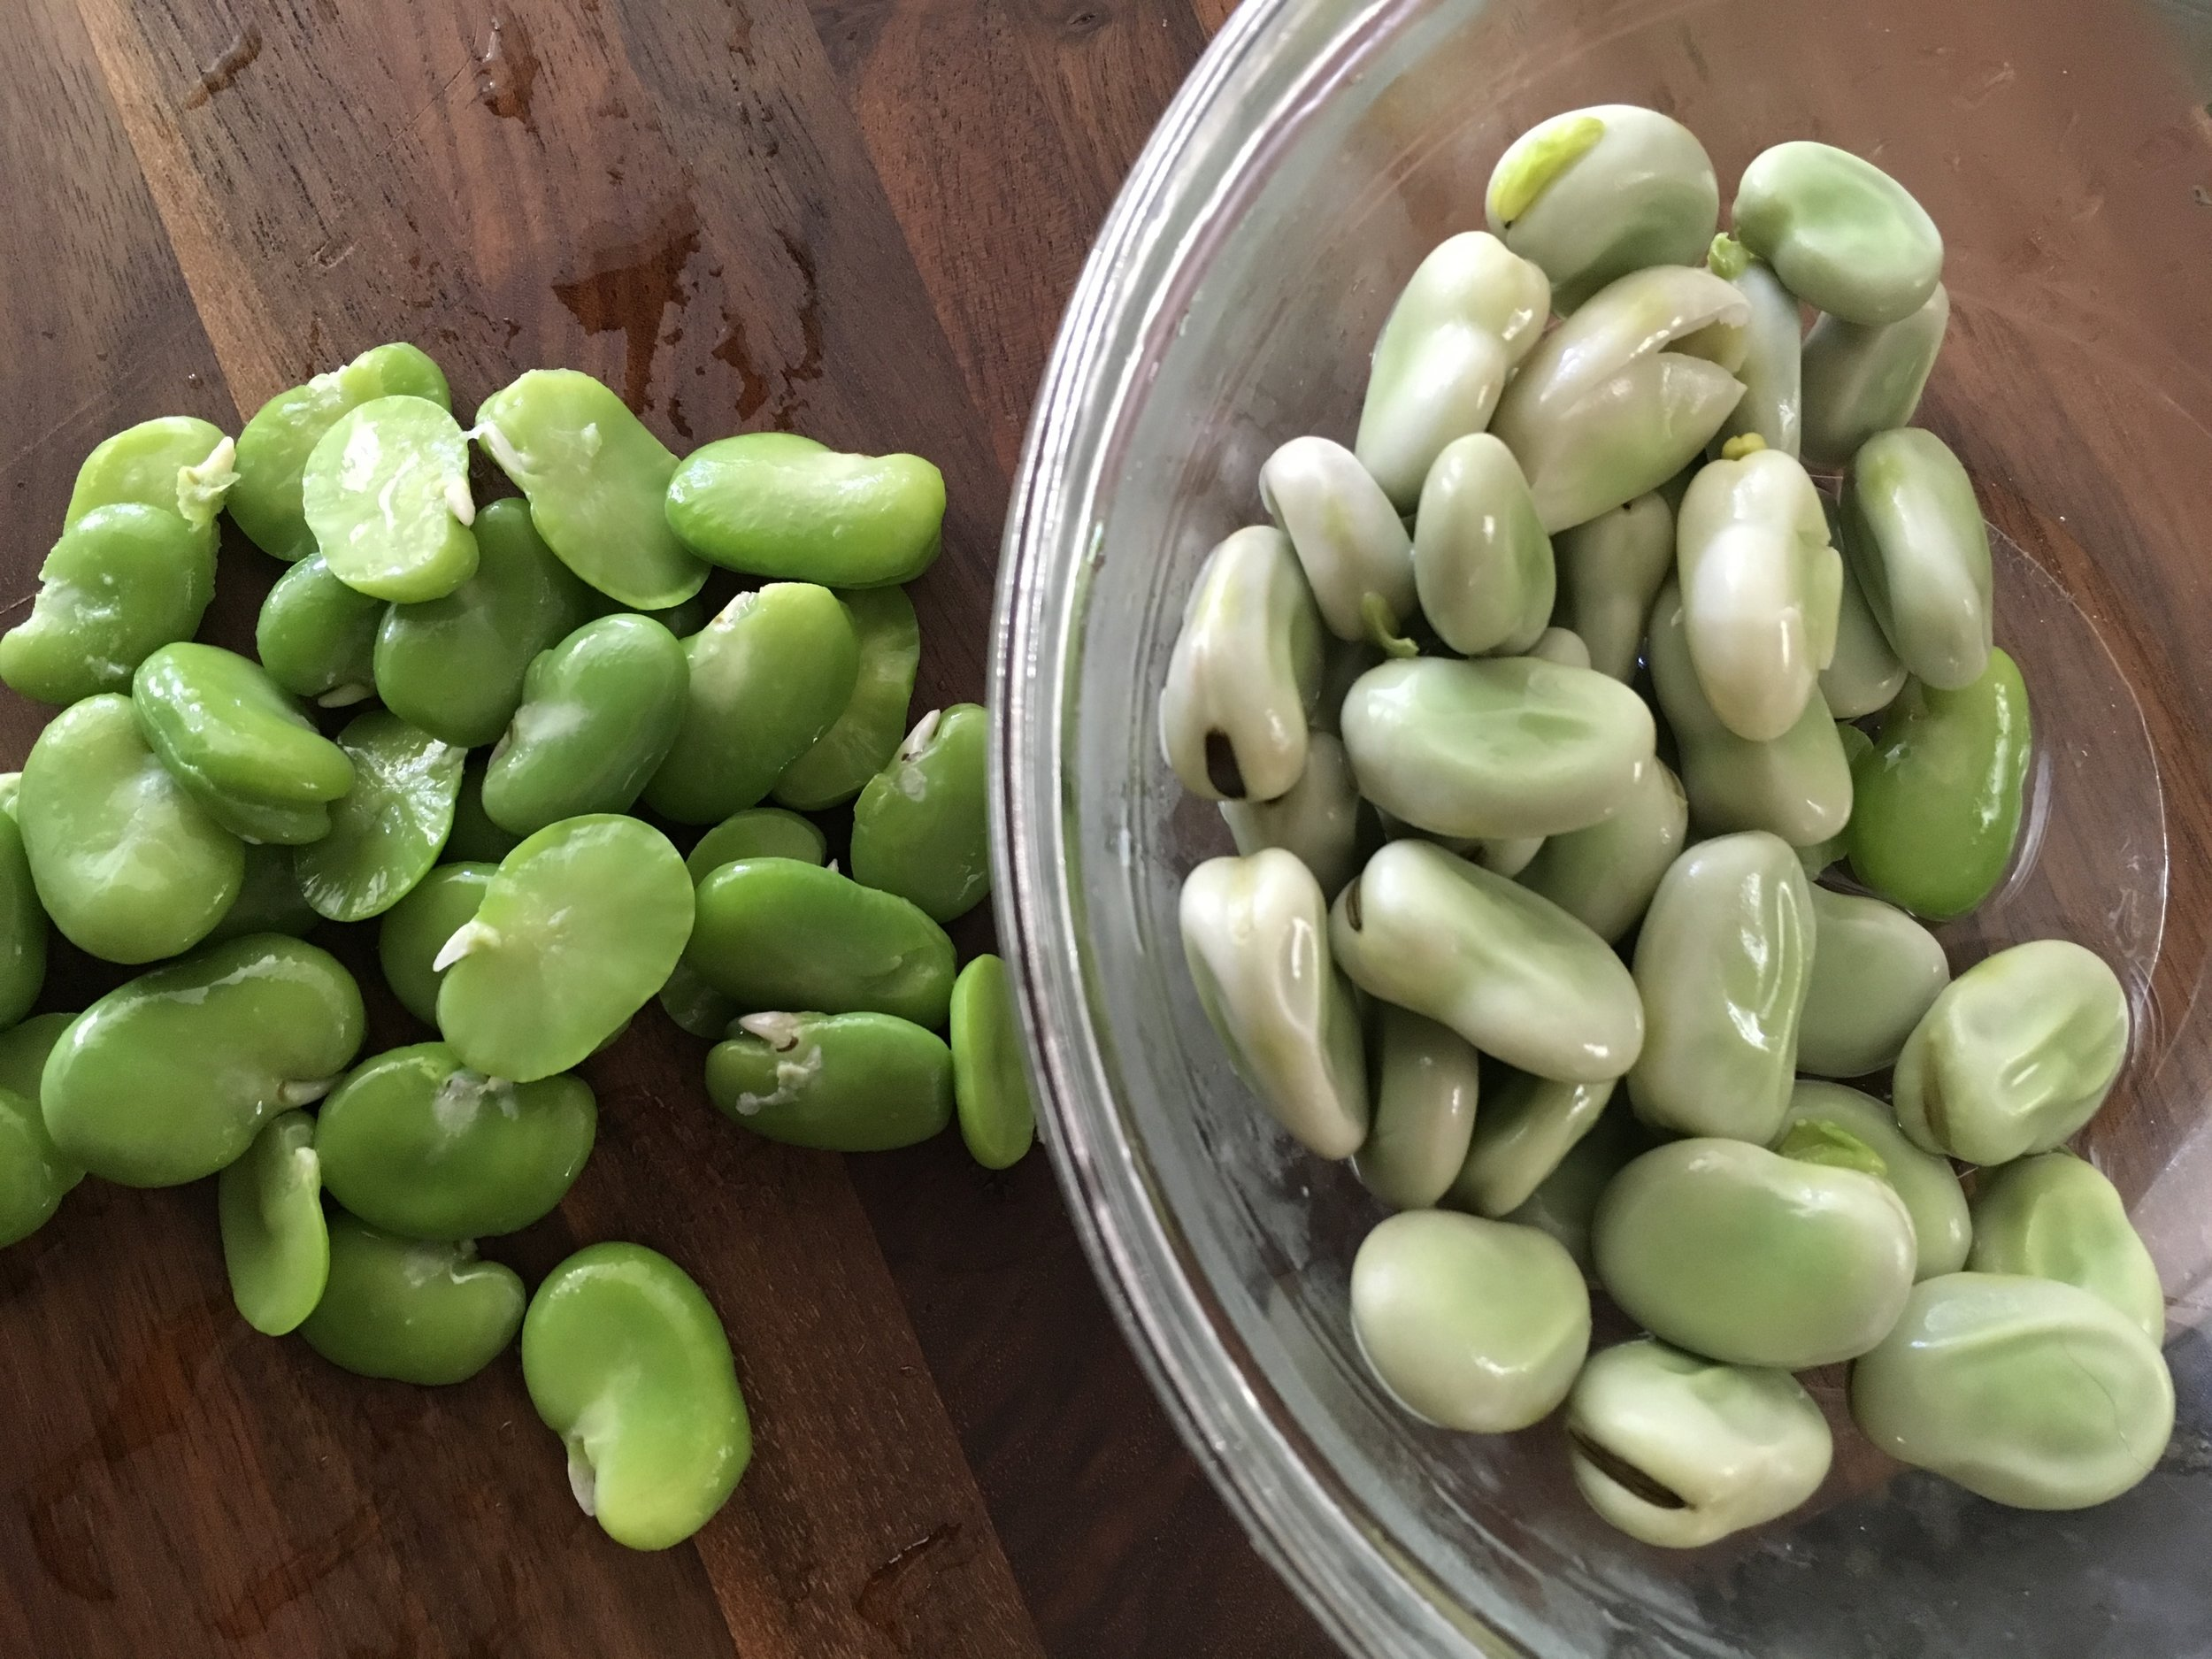 Fava beans (left) squeezed from shriveled shells (right) after a 2 minute blanch & ice bath